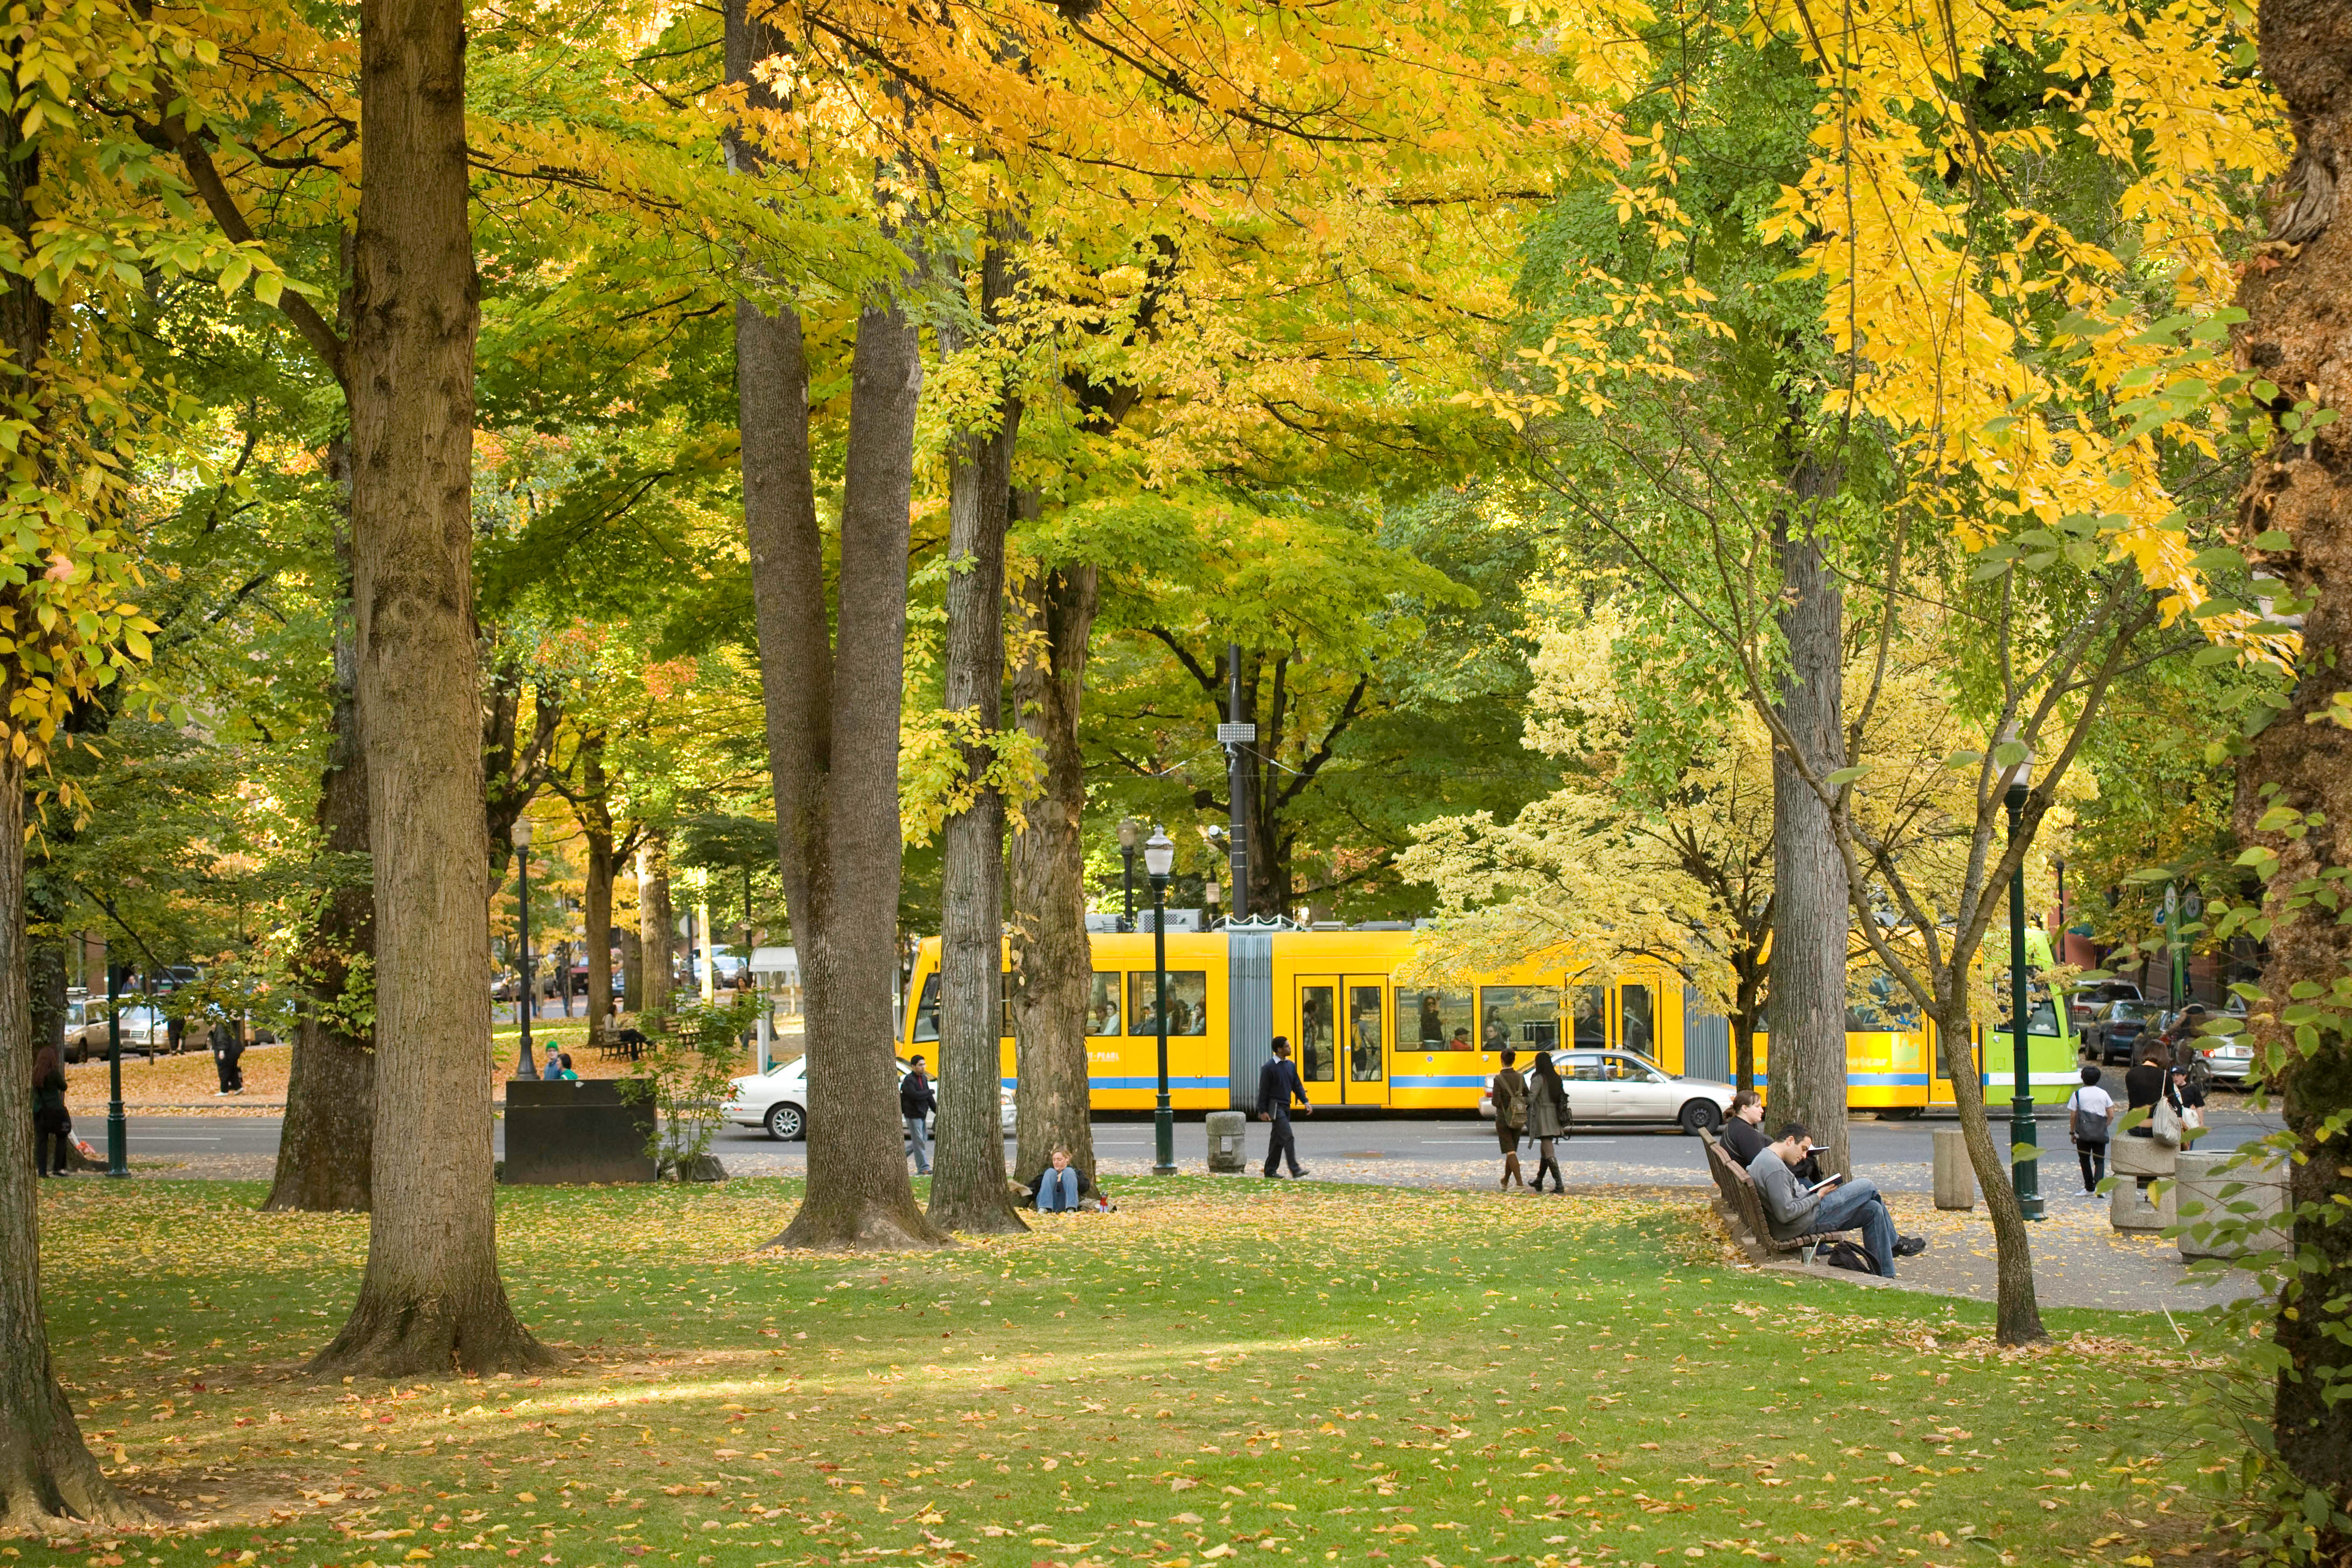 A yellow streetcar moves through the park blocks